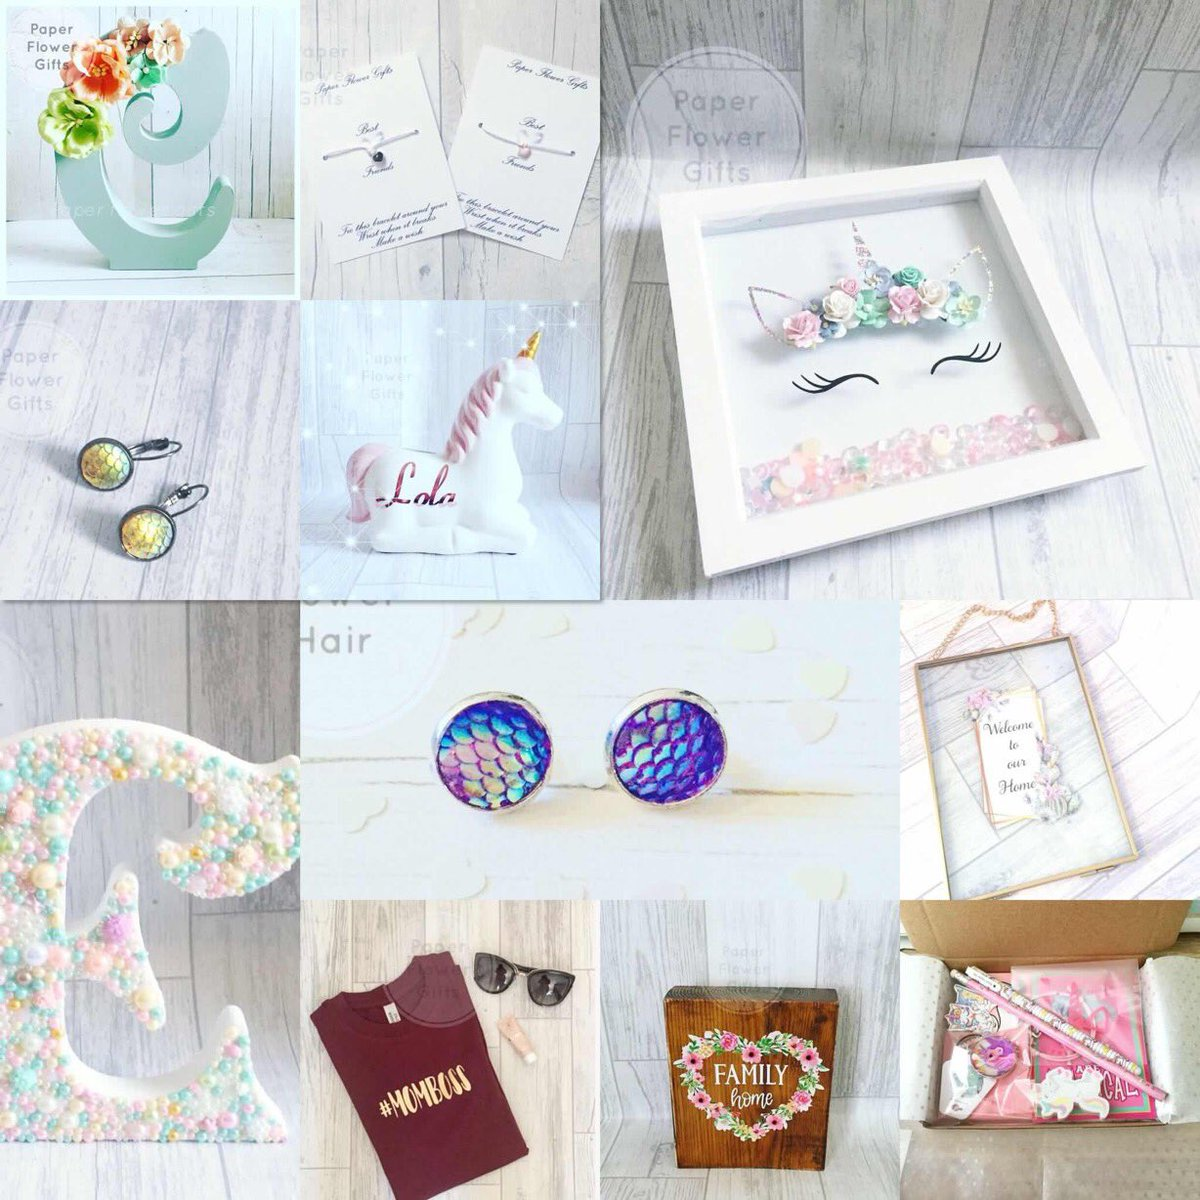 Good morning #UKGiftHour we are having a day off today a garden needs some love  check out our selection on gifts/home accessories #etsy #gifts  https://www. etsy.com/uk/shop/Paperf lowergiftsShop &nbsp; … <br>http://pic.twitter.com/QibJ9yJWYJ